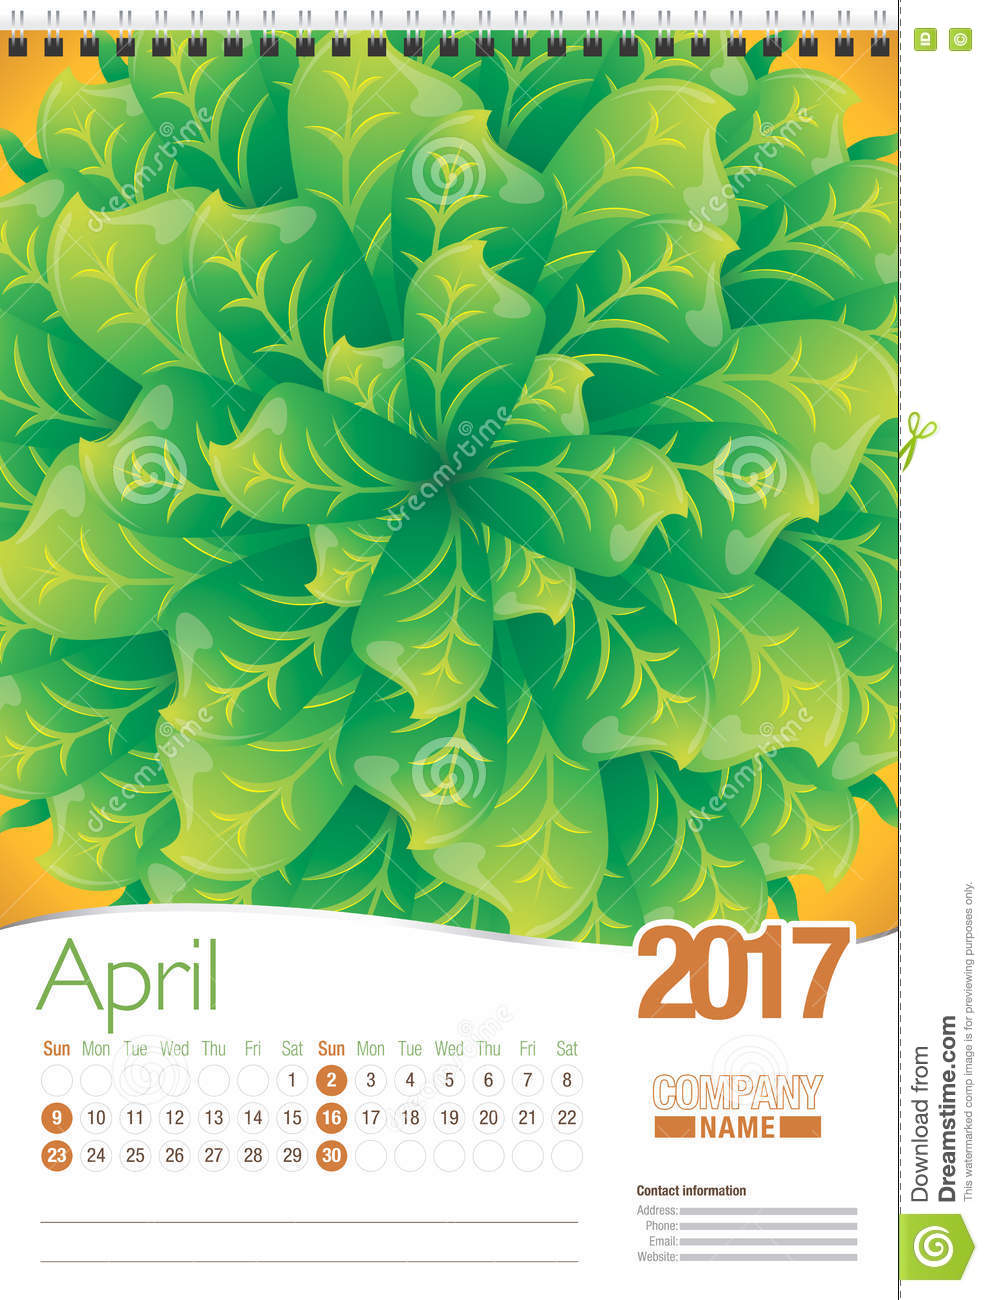 April Wall Calendar 2017 Template With Abstract Floral Design ...